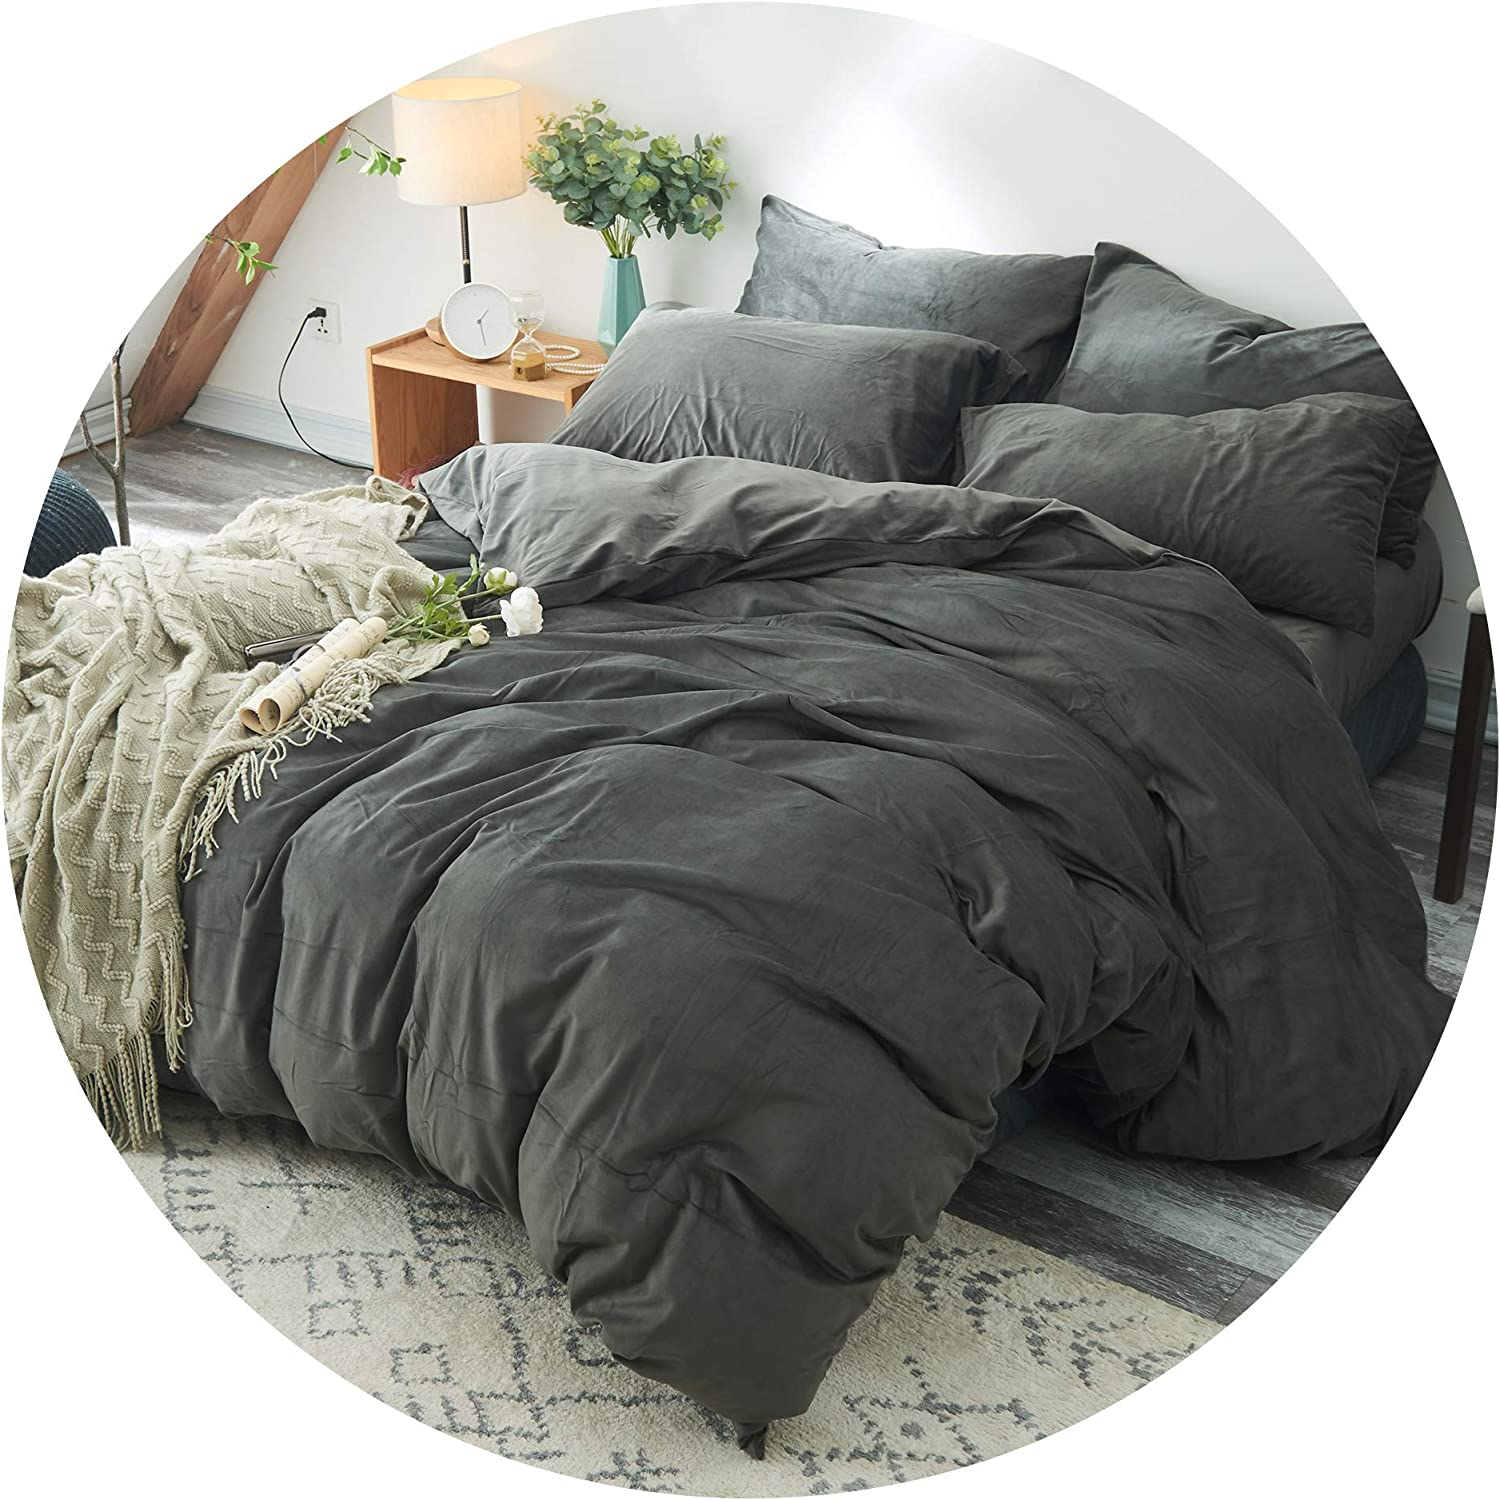 SPACE LION Premium Velvet Duvet Cover   Weighted Blanket Removable Cover 6080in   Twin Size Grey …